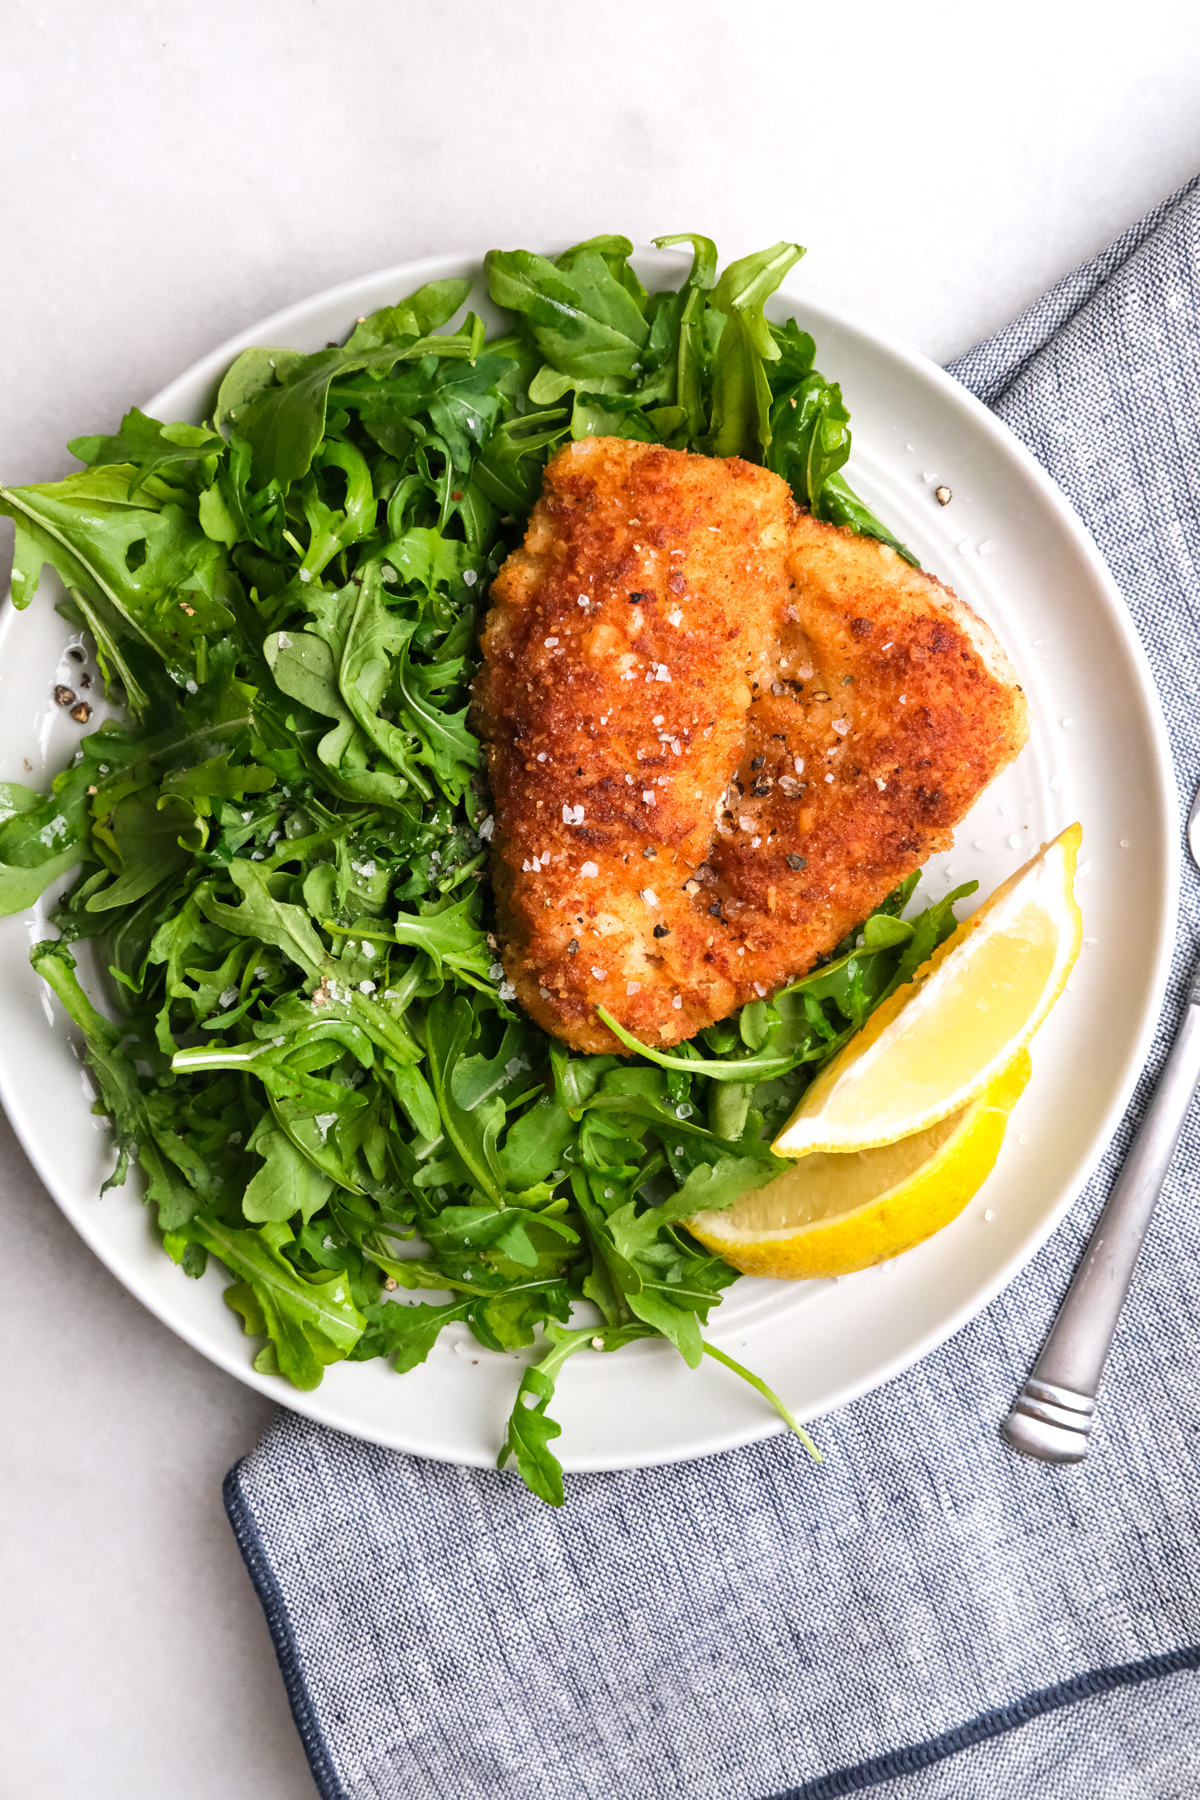 breaded chicken on a bed of arugula with lemon slices